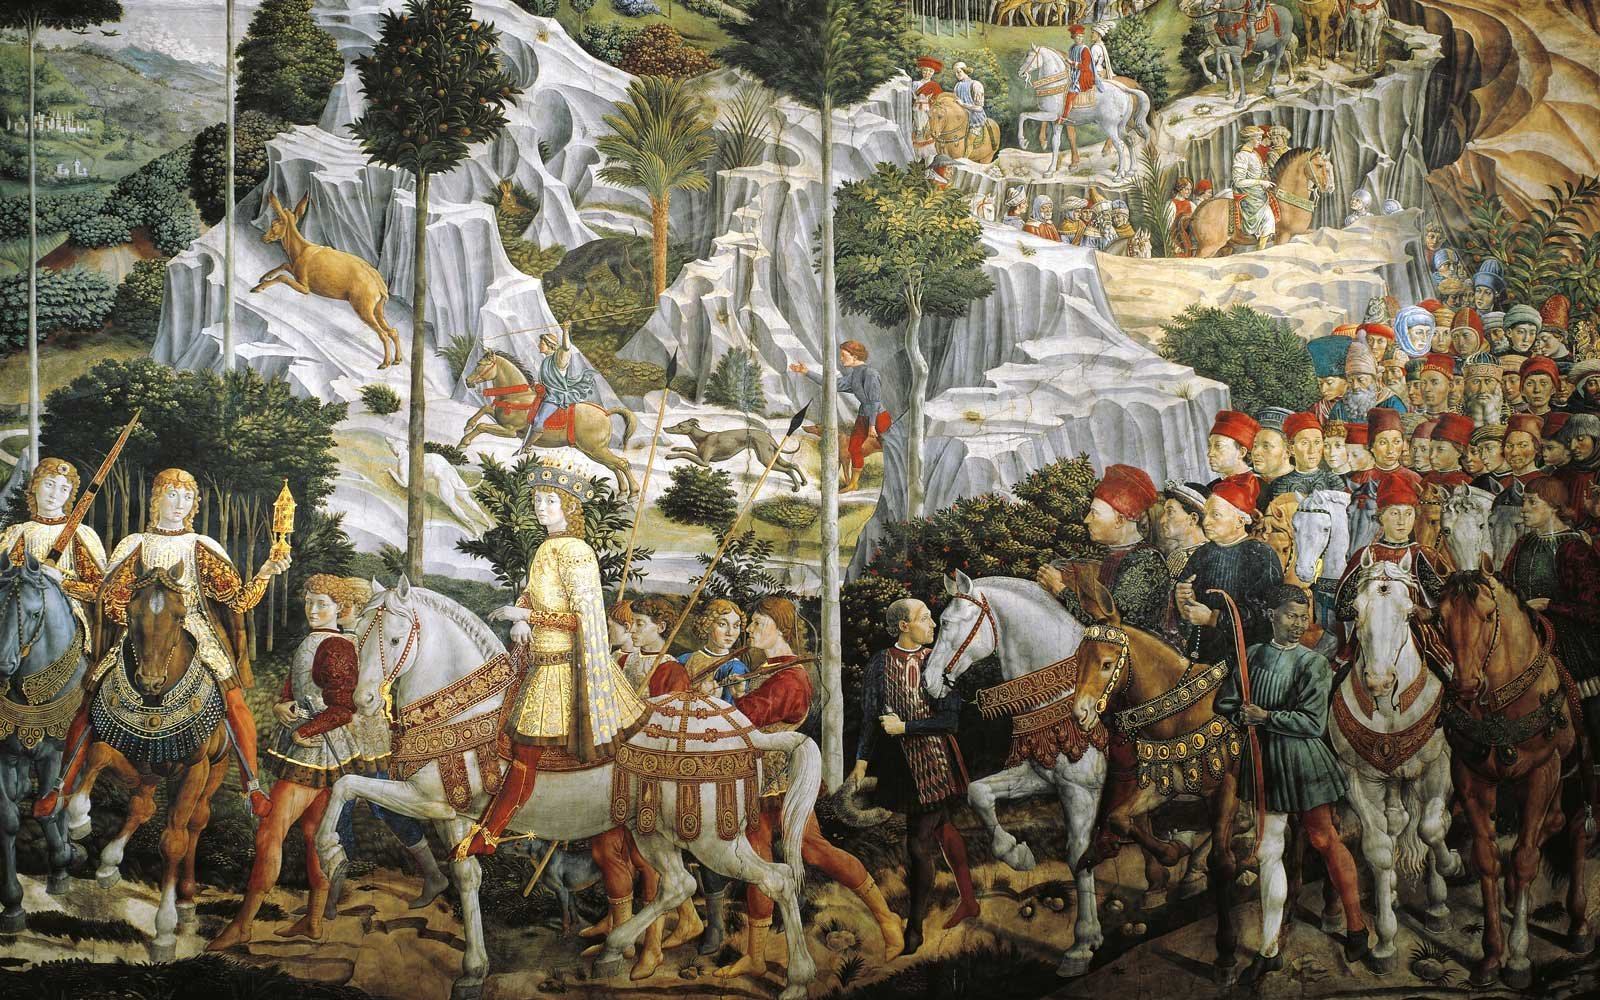 Procession of Magi Kings to Bethlehem, by Benozzo Gozzoli, Chapel of Palazzo Medici Riccardi, Florence, Italy